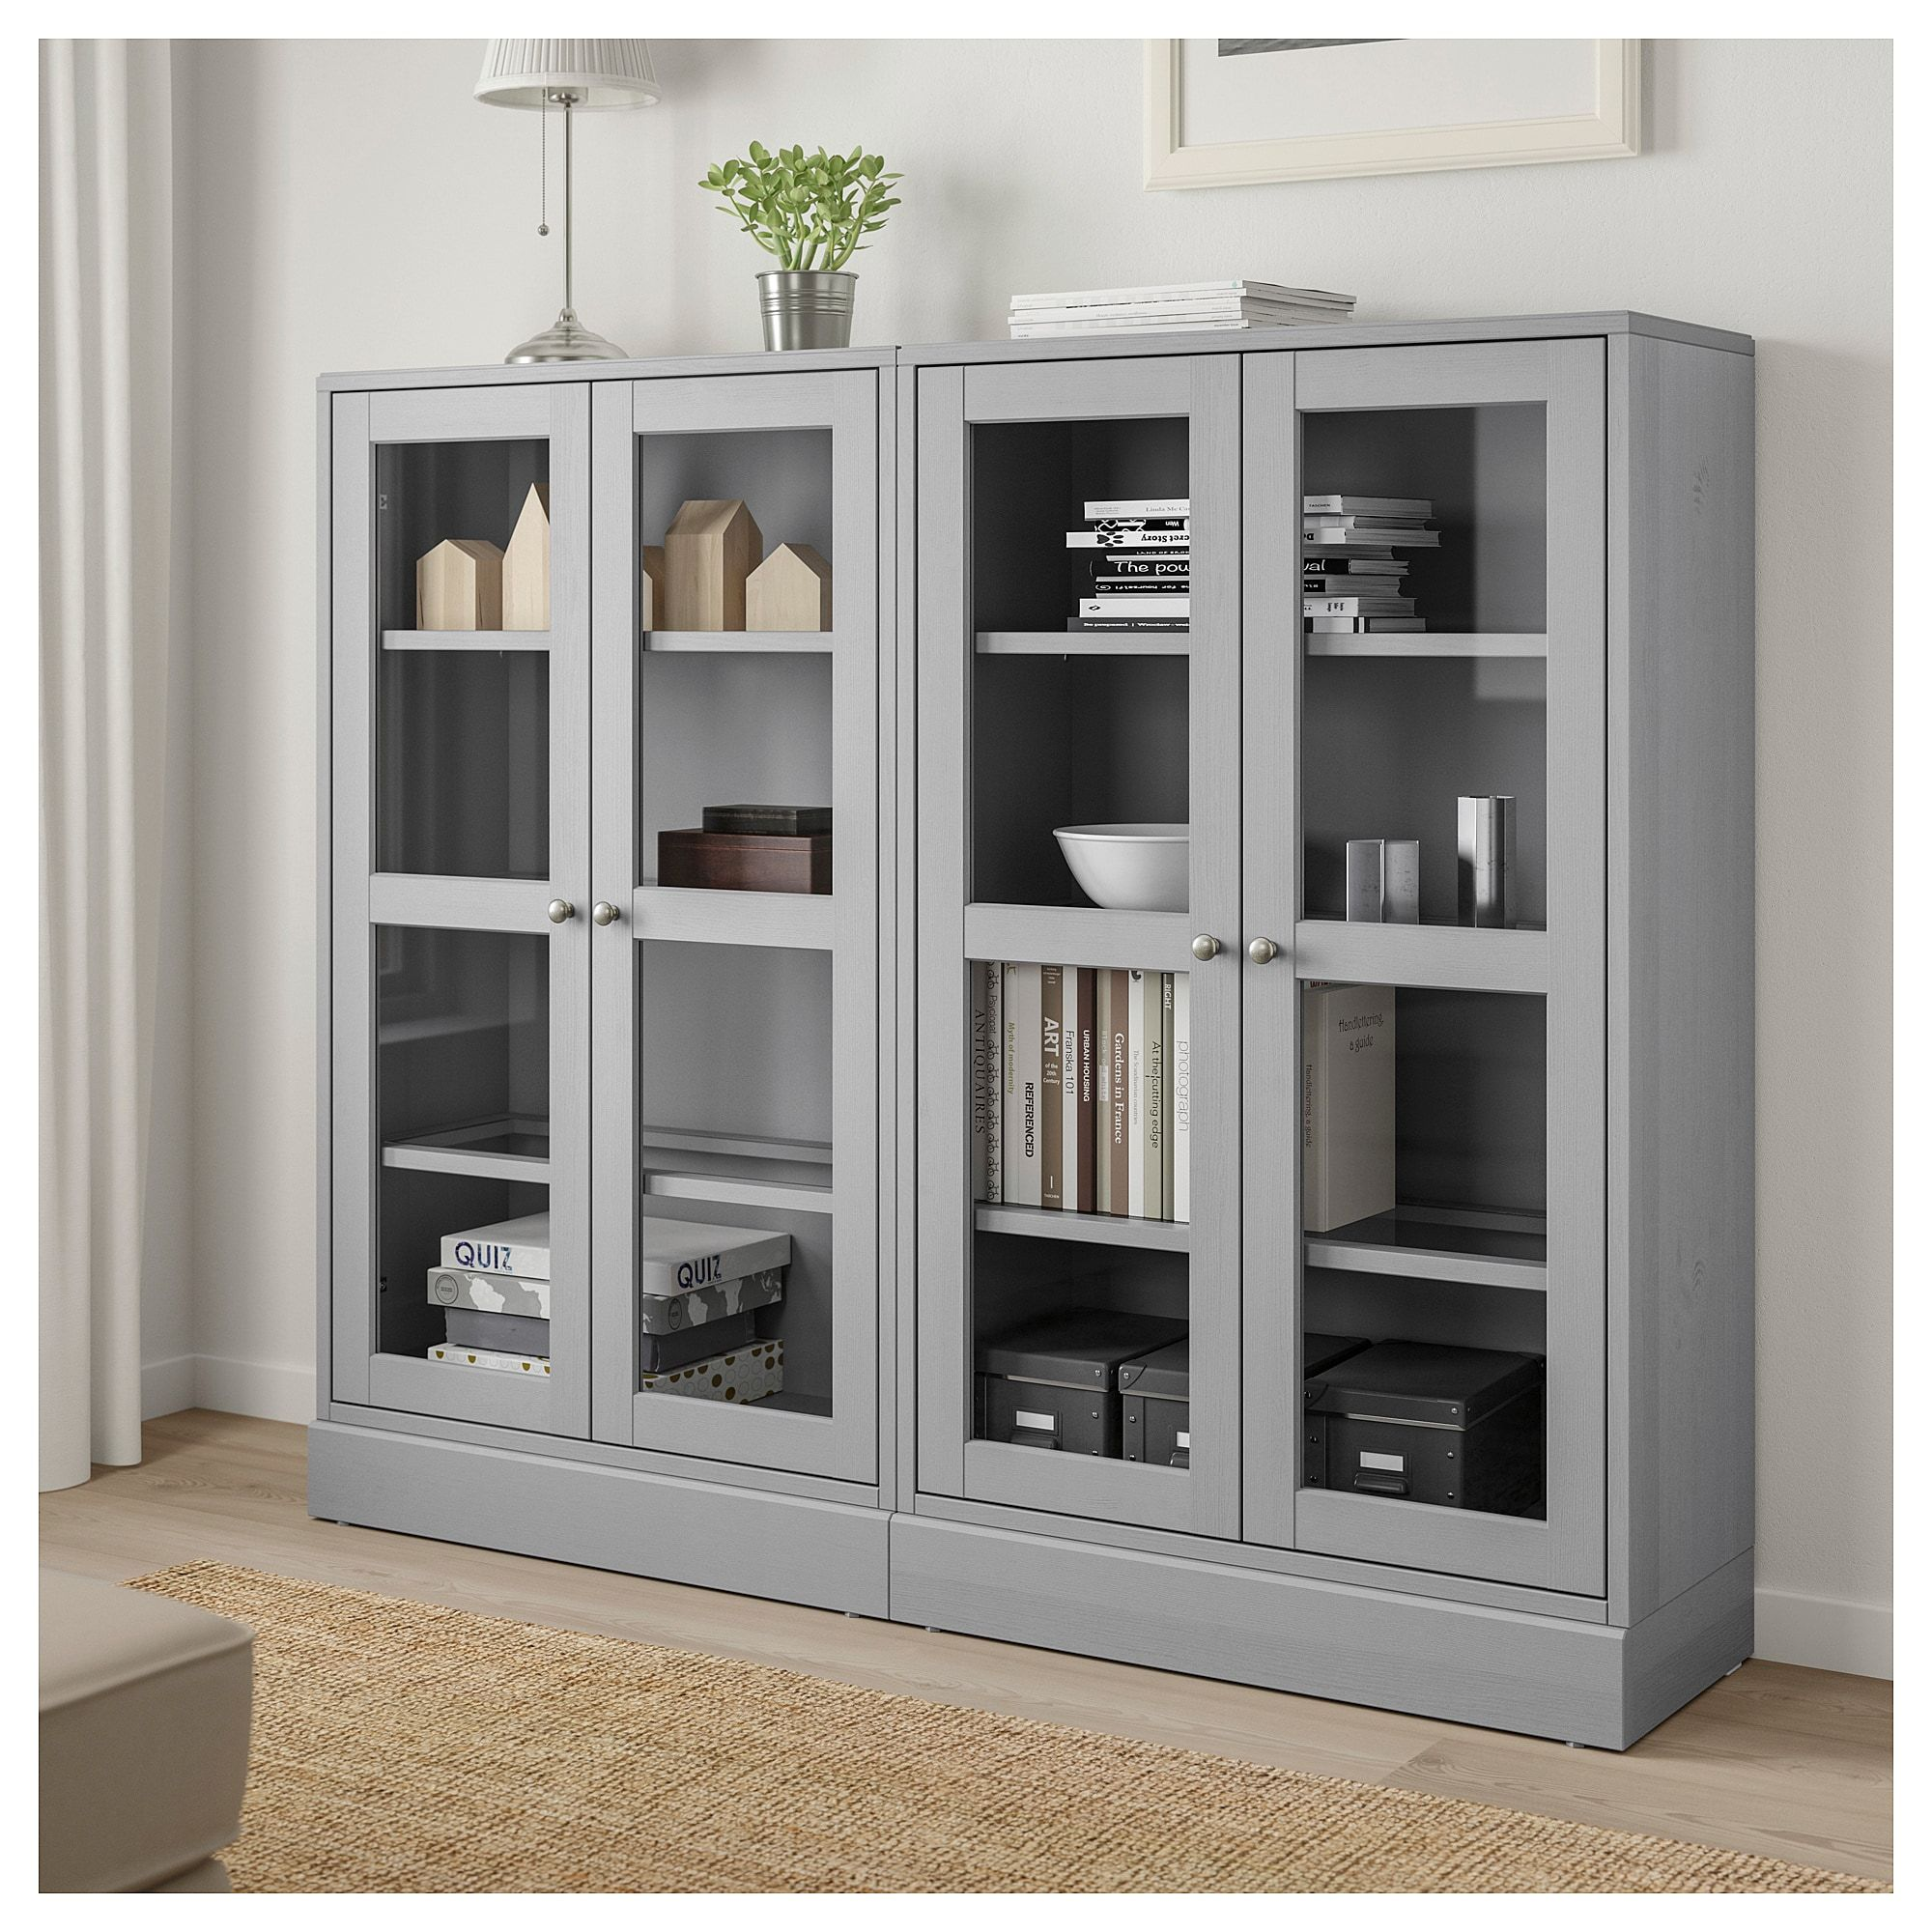 wglass IKEA gray Storage doors HAVSTA combination D9eEbHIW2Y